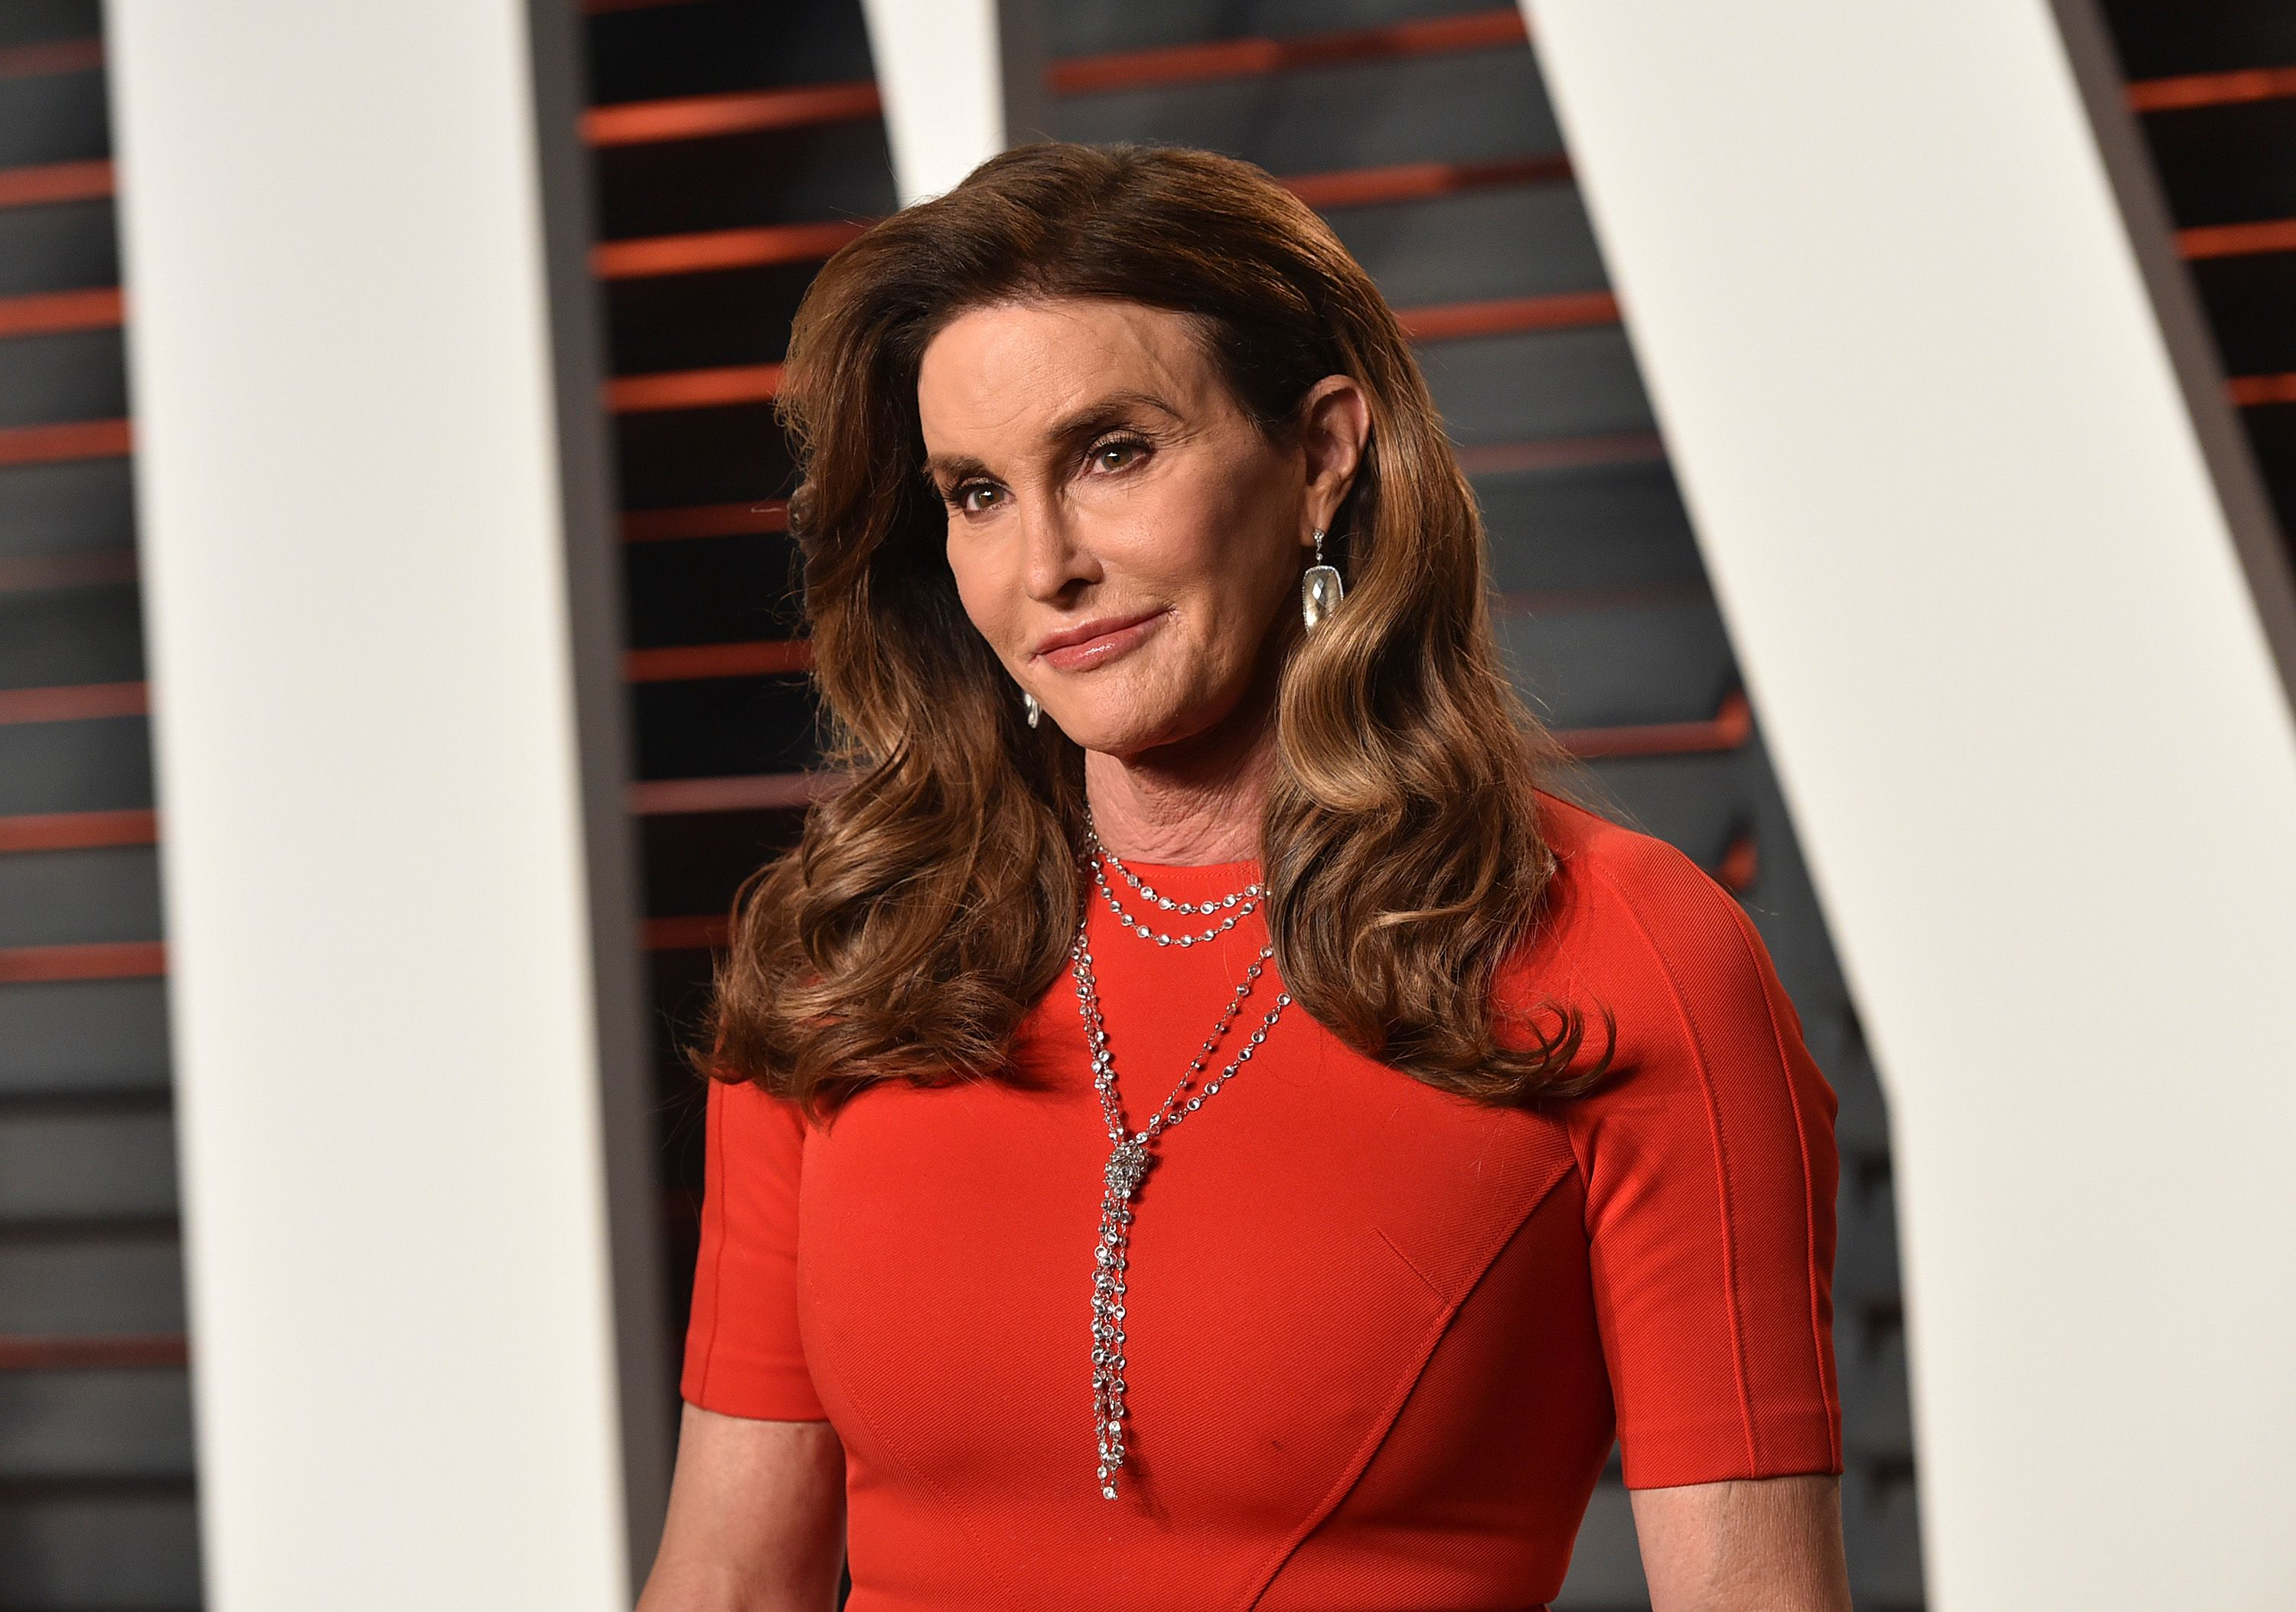 TV personality Caitlyn Jenner at the 2016 Vanity Fair Oscar Party Hosted By Graydon Carter at Wallis Annenberg Center for the Performing Arts on February 28, 2016 | Photo: Getty Images